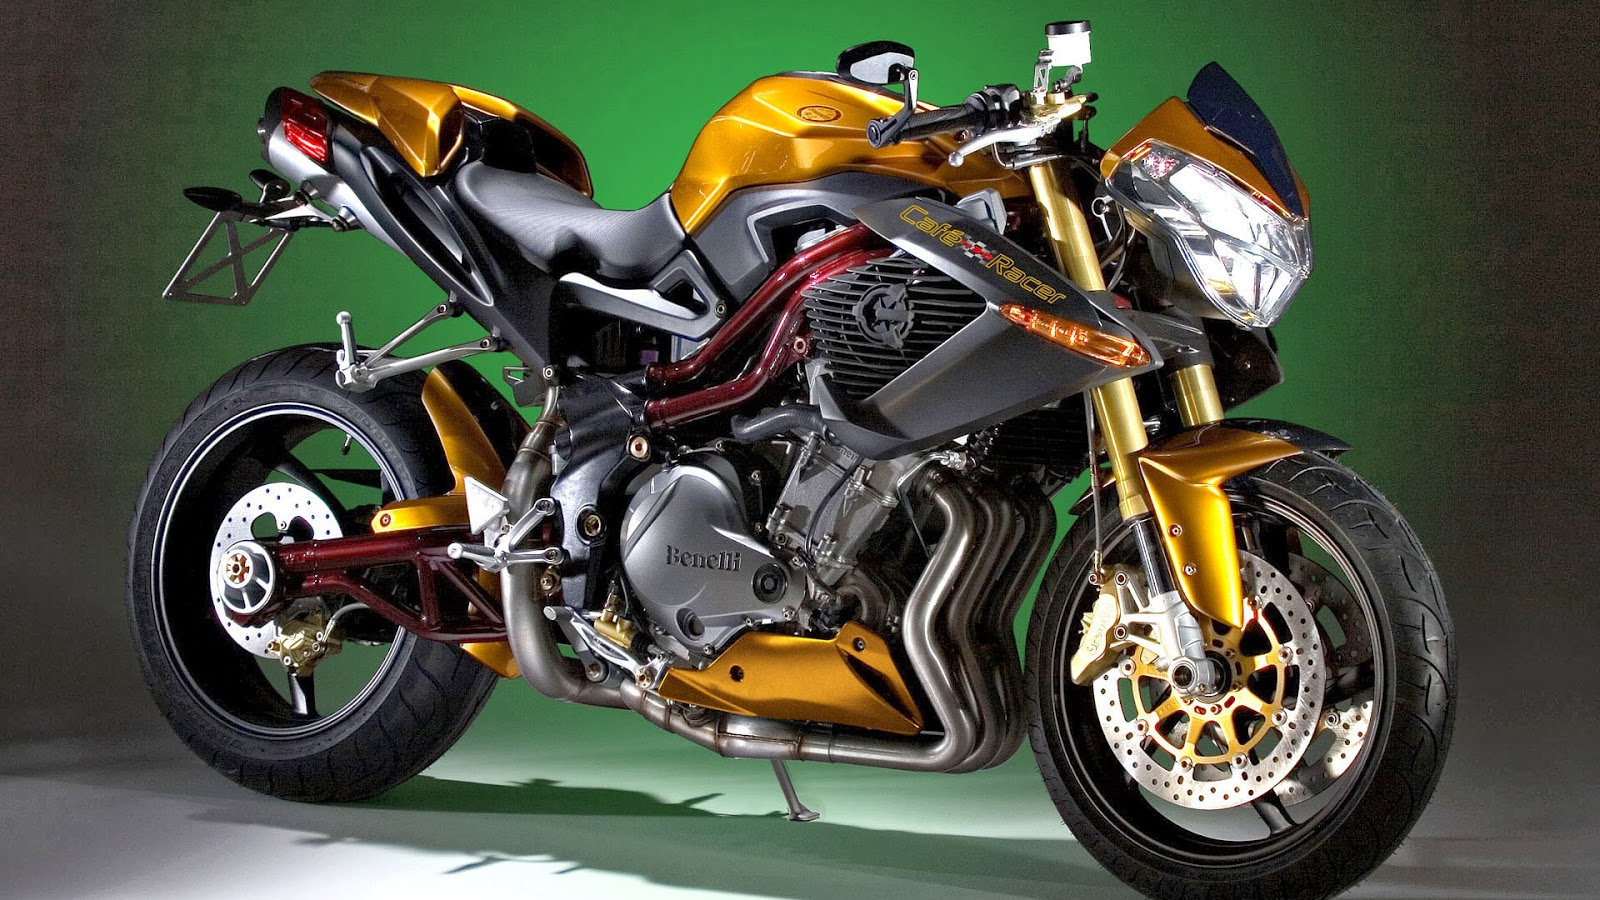 Sport Bikes Wallpapers For Android: HD Sports Bikes Wallpaper 2014